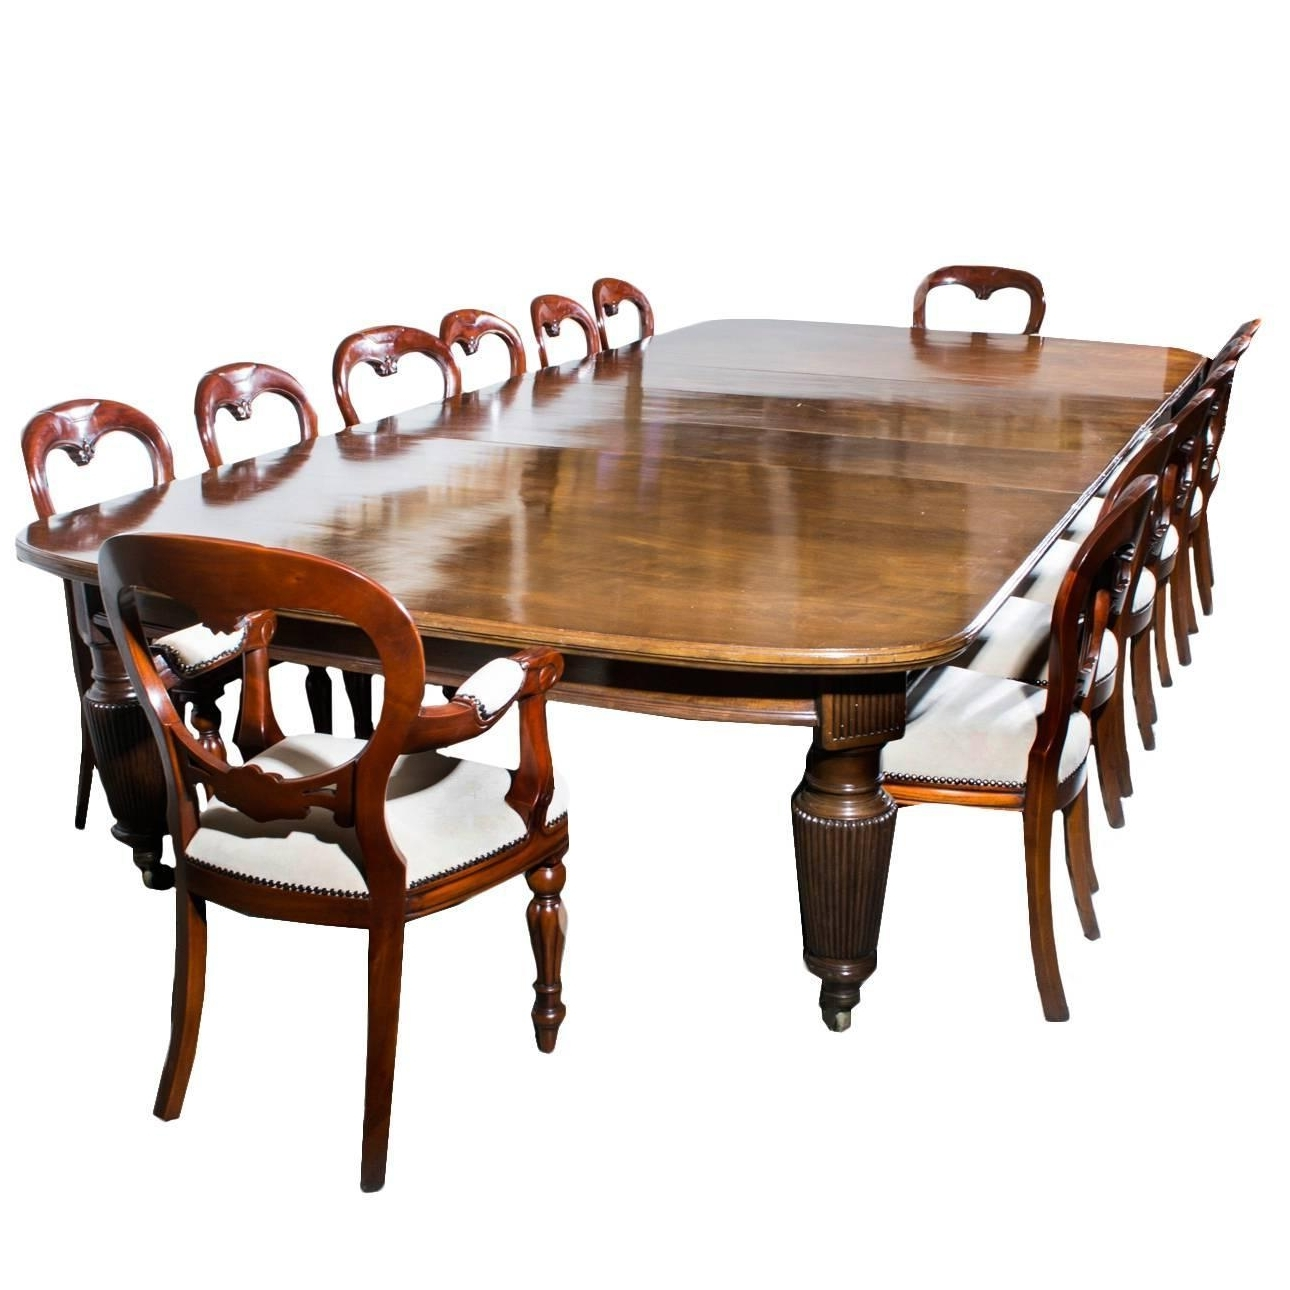 Antique Extending Dining Table 14 Chairs, Circa 1880 Within Trendy Oval Extending Dining Tables And Chairs (View 1 of 25)